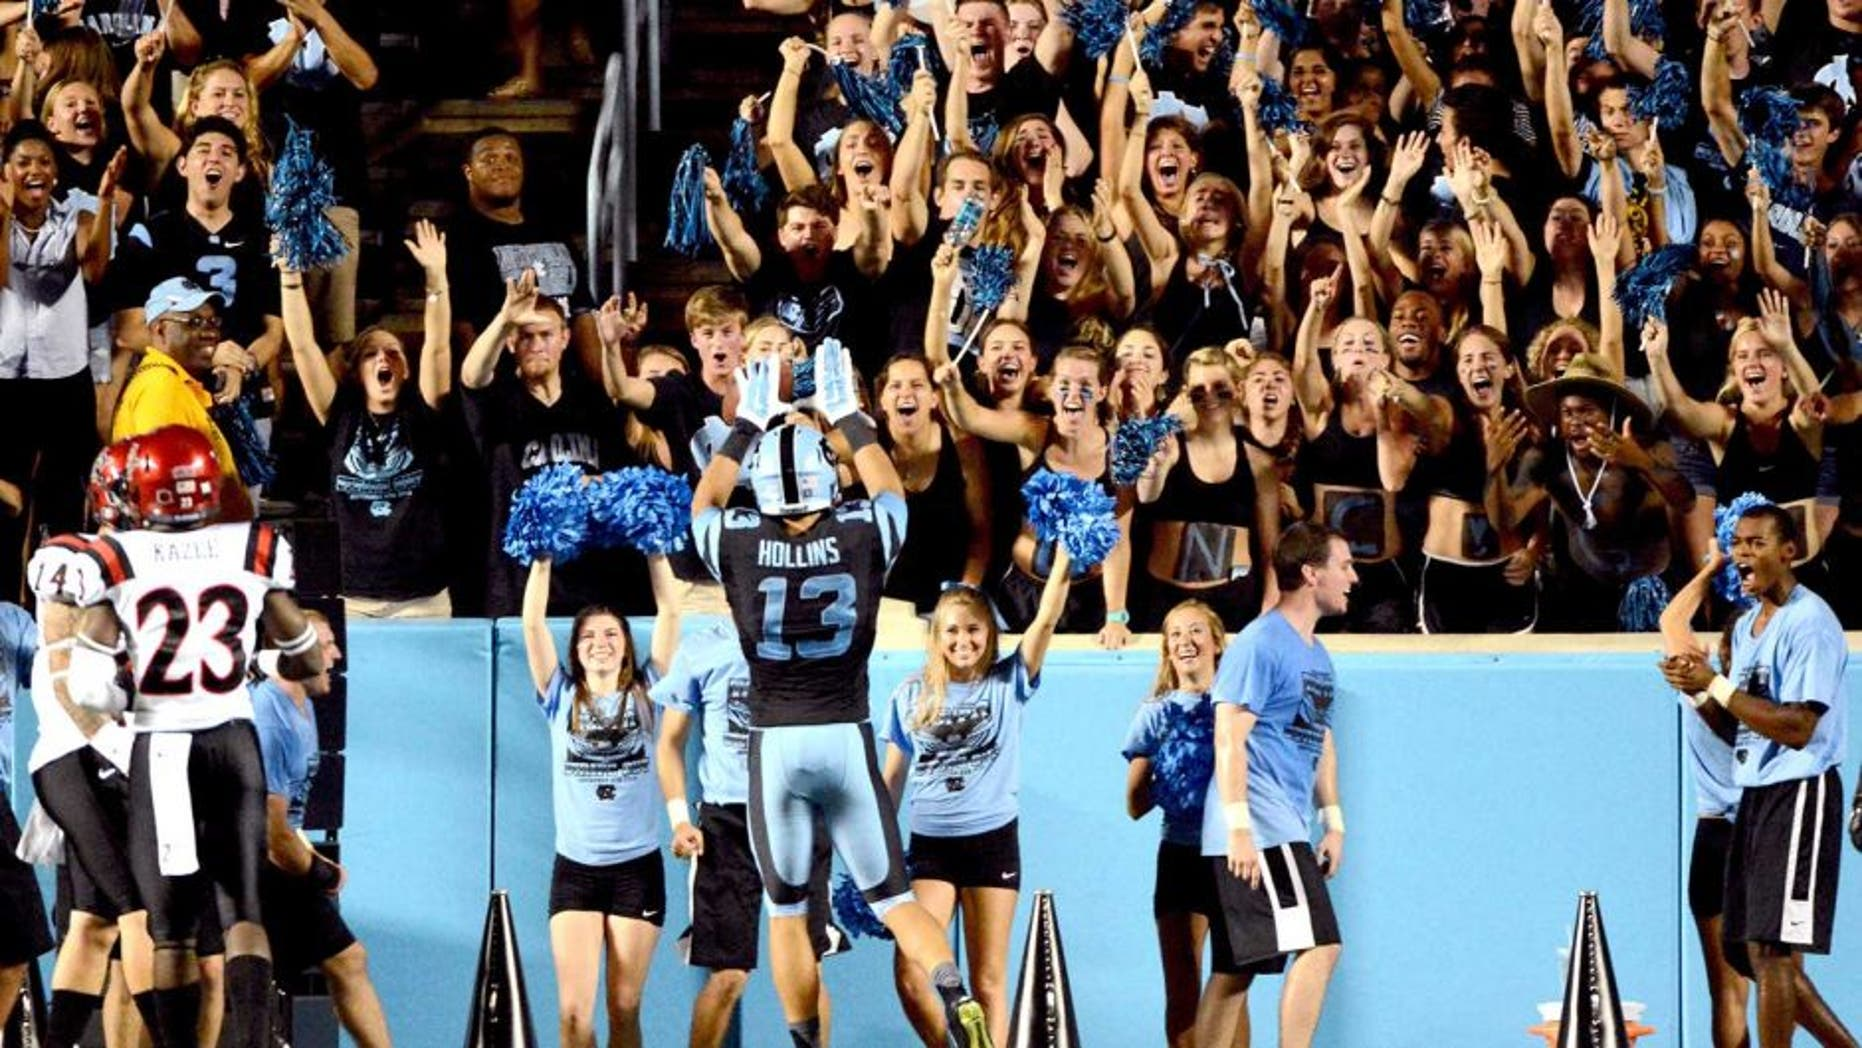 Sep 6, 2014; Chapel Hill, NC, USA;North Carolina Tar Heels receiver Mack Hollins (13) celebrates a touchdown with fans during the second half against the San Diego State Aztecs at Kenan Memorial Stadium. North Carolina won 31-27. Mandatory Credit: Rob Kinnan-USA TODAY Sports